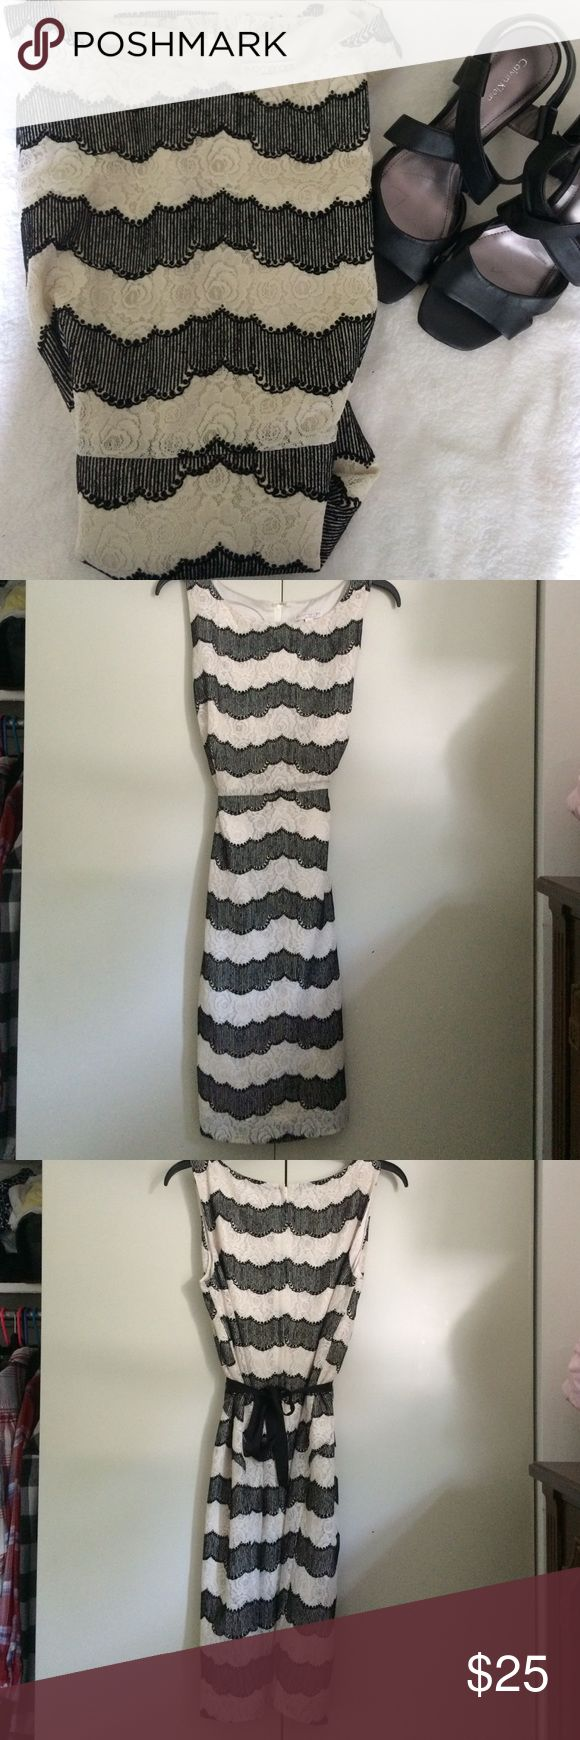 Eva Mendes for New York & Co dress Very comfy and super chic. Worn once to a baby shower while pregnant. Stretchy fabric. Has ties on back so it can be worn even as a small or med. beautiful lace detail. New York & Company Dresses Midi